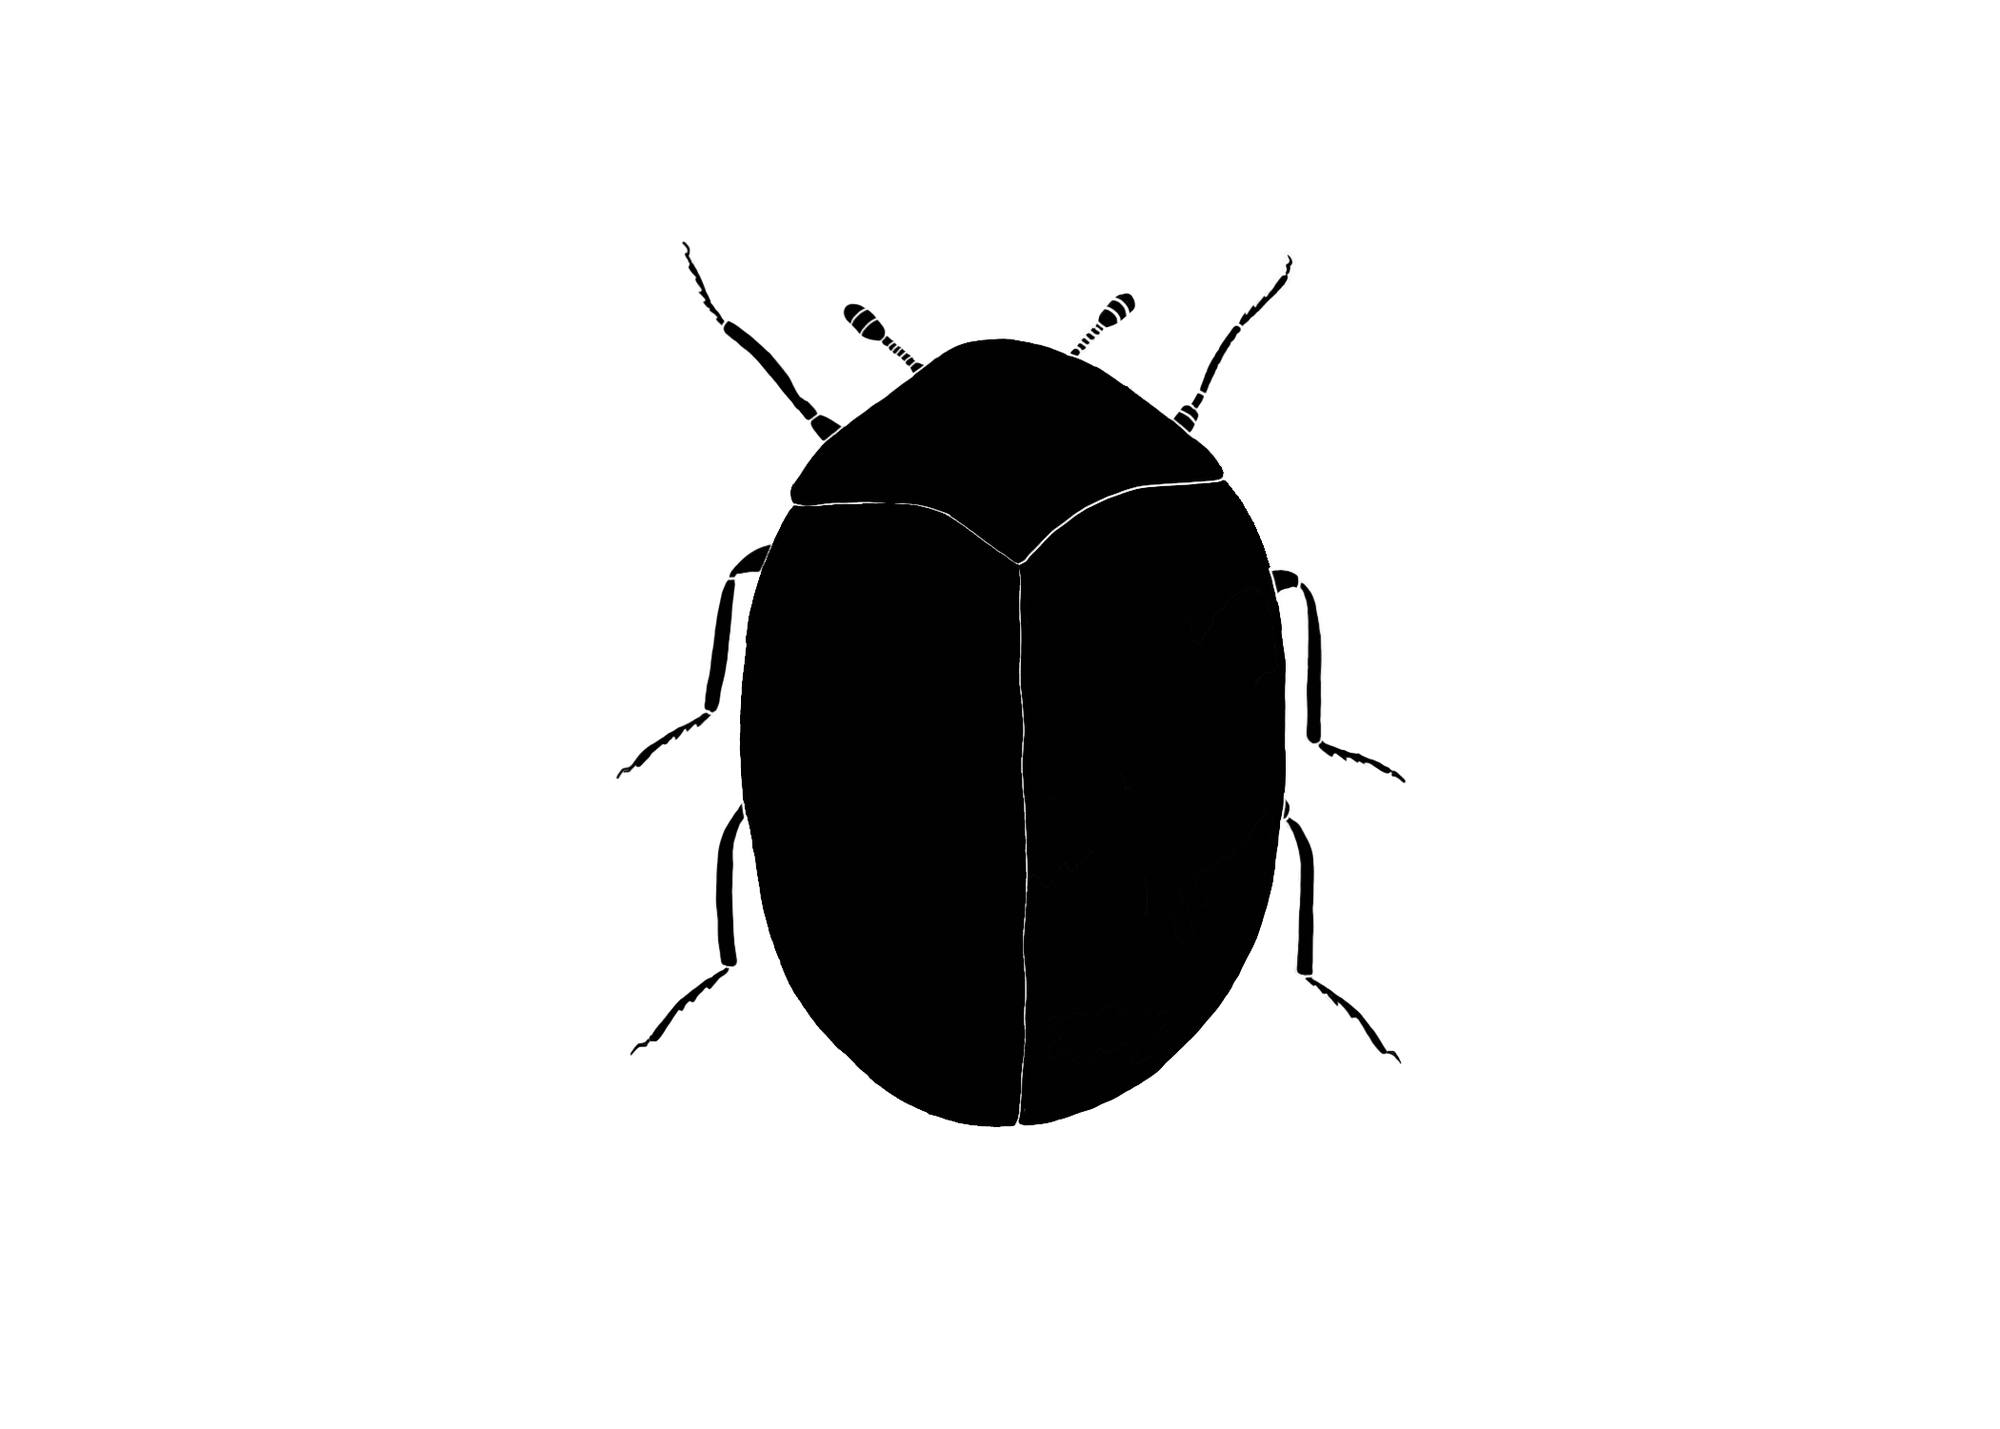 A top-down view of a carpet beetle.  The beetle outline is completely shaded in black. The beetle is an oval shape, with two short antennae on the head and 6 short legs.